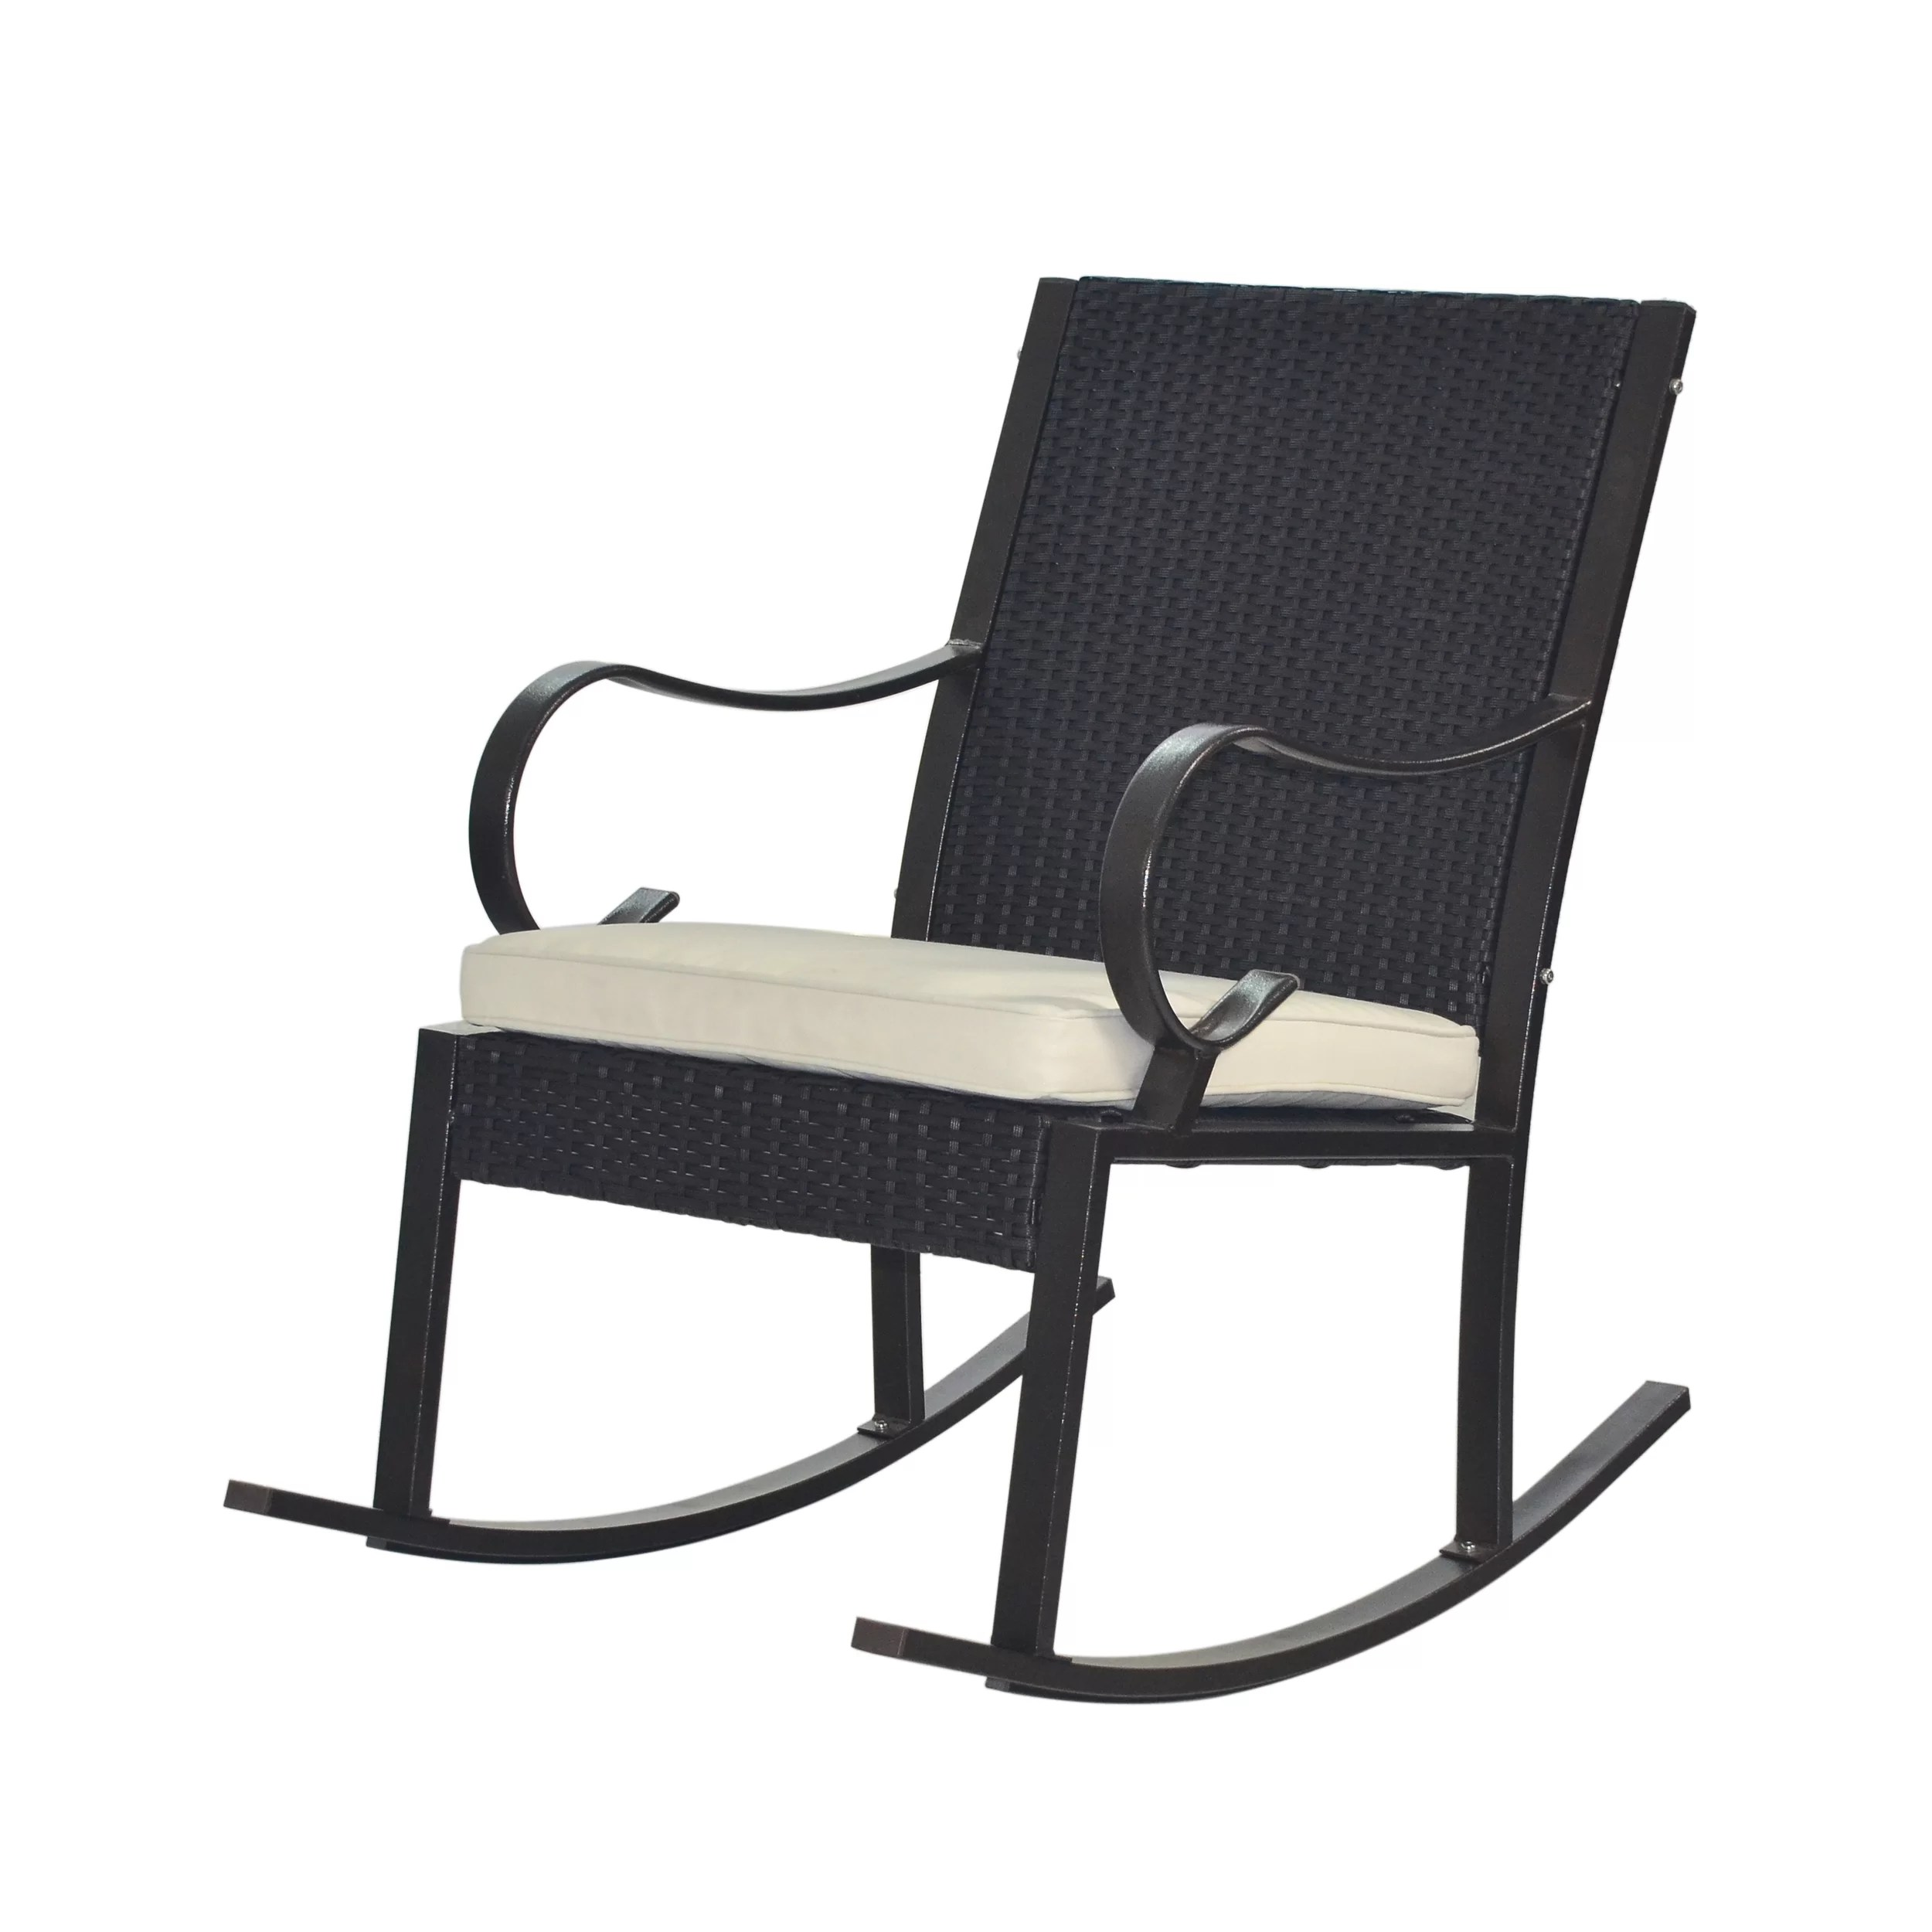 Wicker Rocking Chair Kampmann Outdoor Wicker Rocking Chair With Cushions